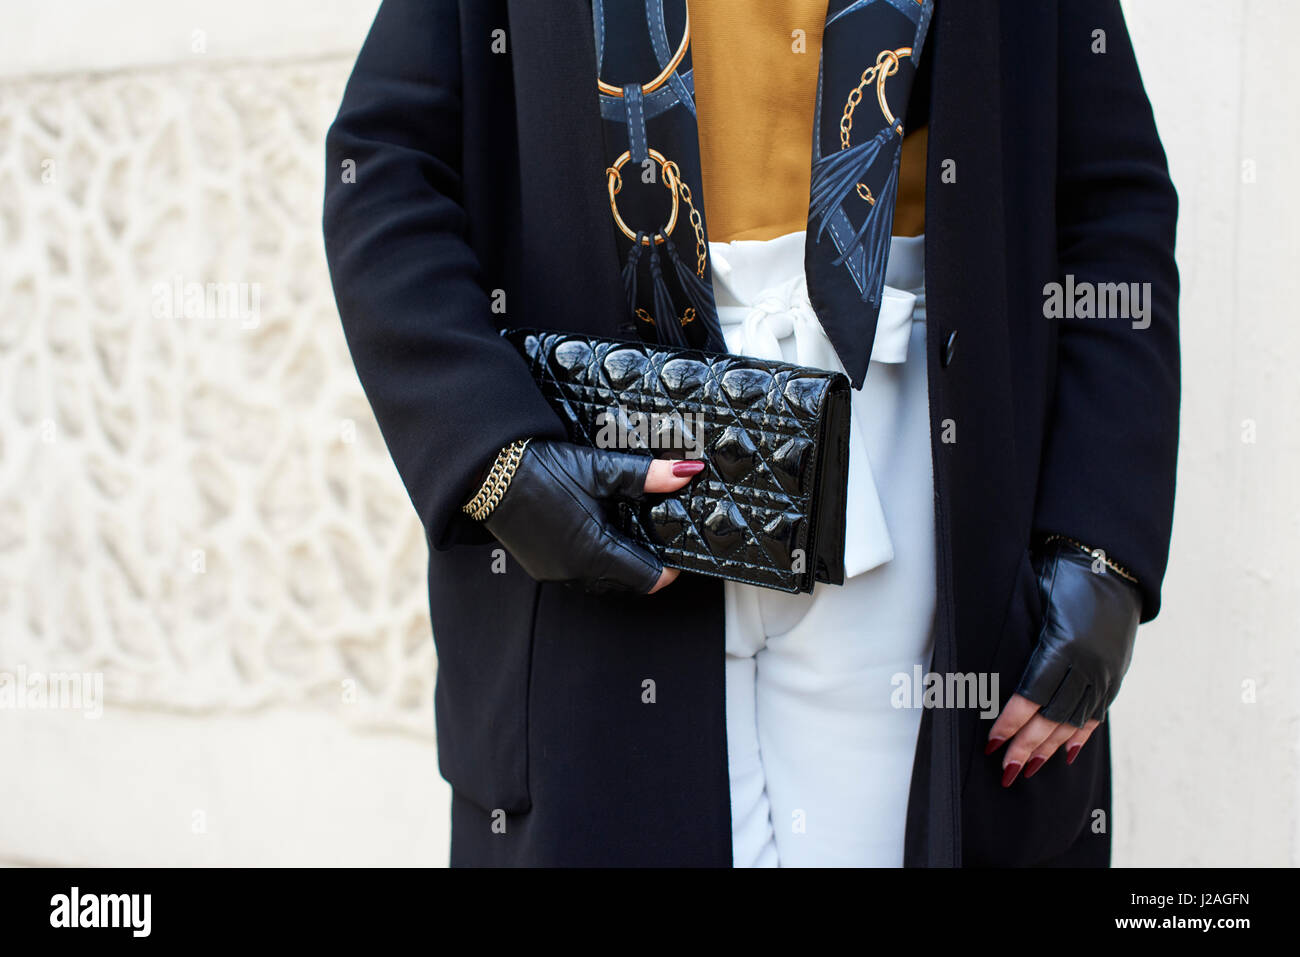 LONDON - FEBRUARY, 2017: Mid section of woman in overcoat and fingerless gloves holding a Chanel clutch handbag - Stock Image